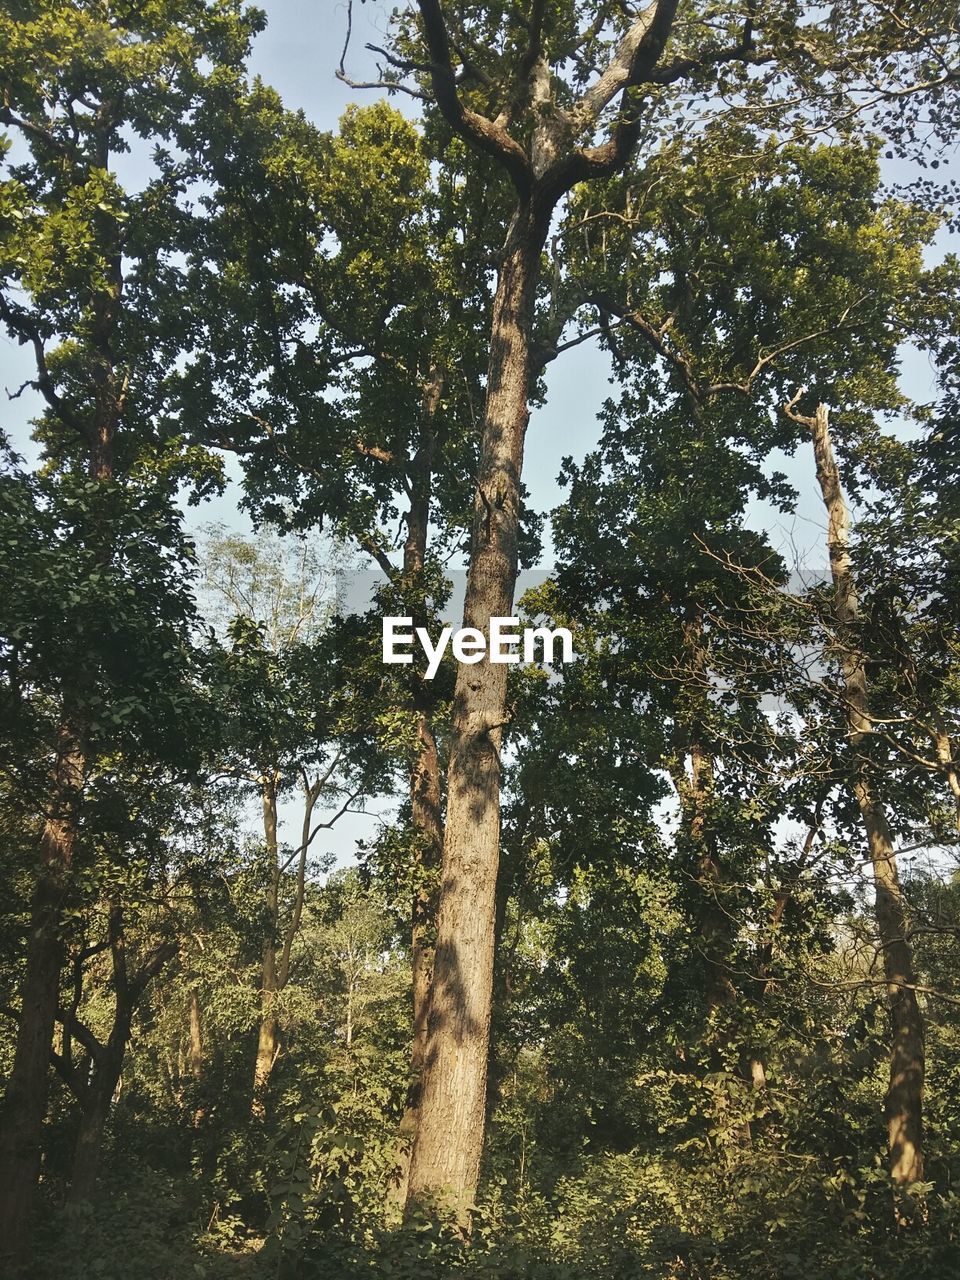 tree, forest, nature, growth, tree trunk, day, low angle view, no people, outdoors, tranquil scene, beauty in nature, scenics, tranquility, branch, landscape, sky